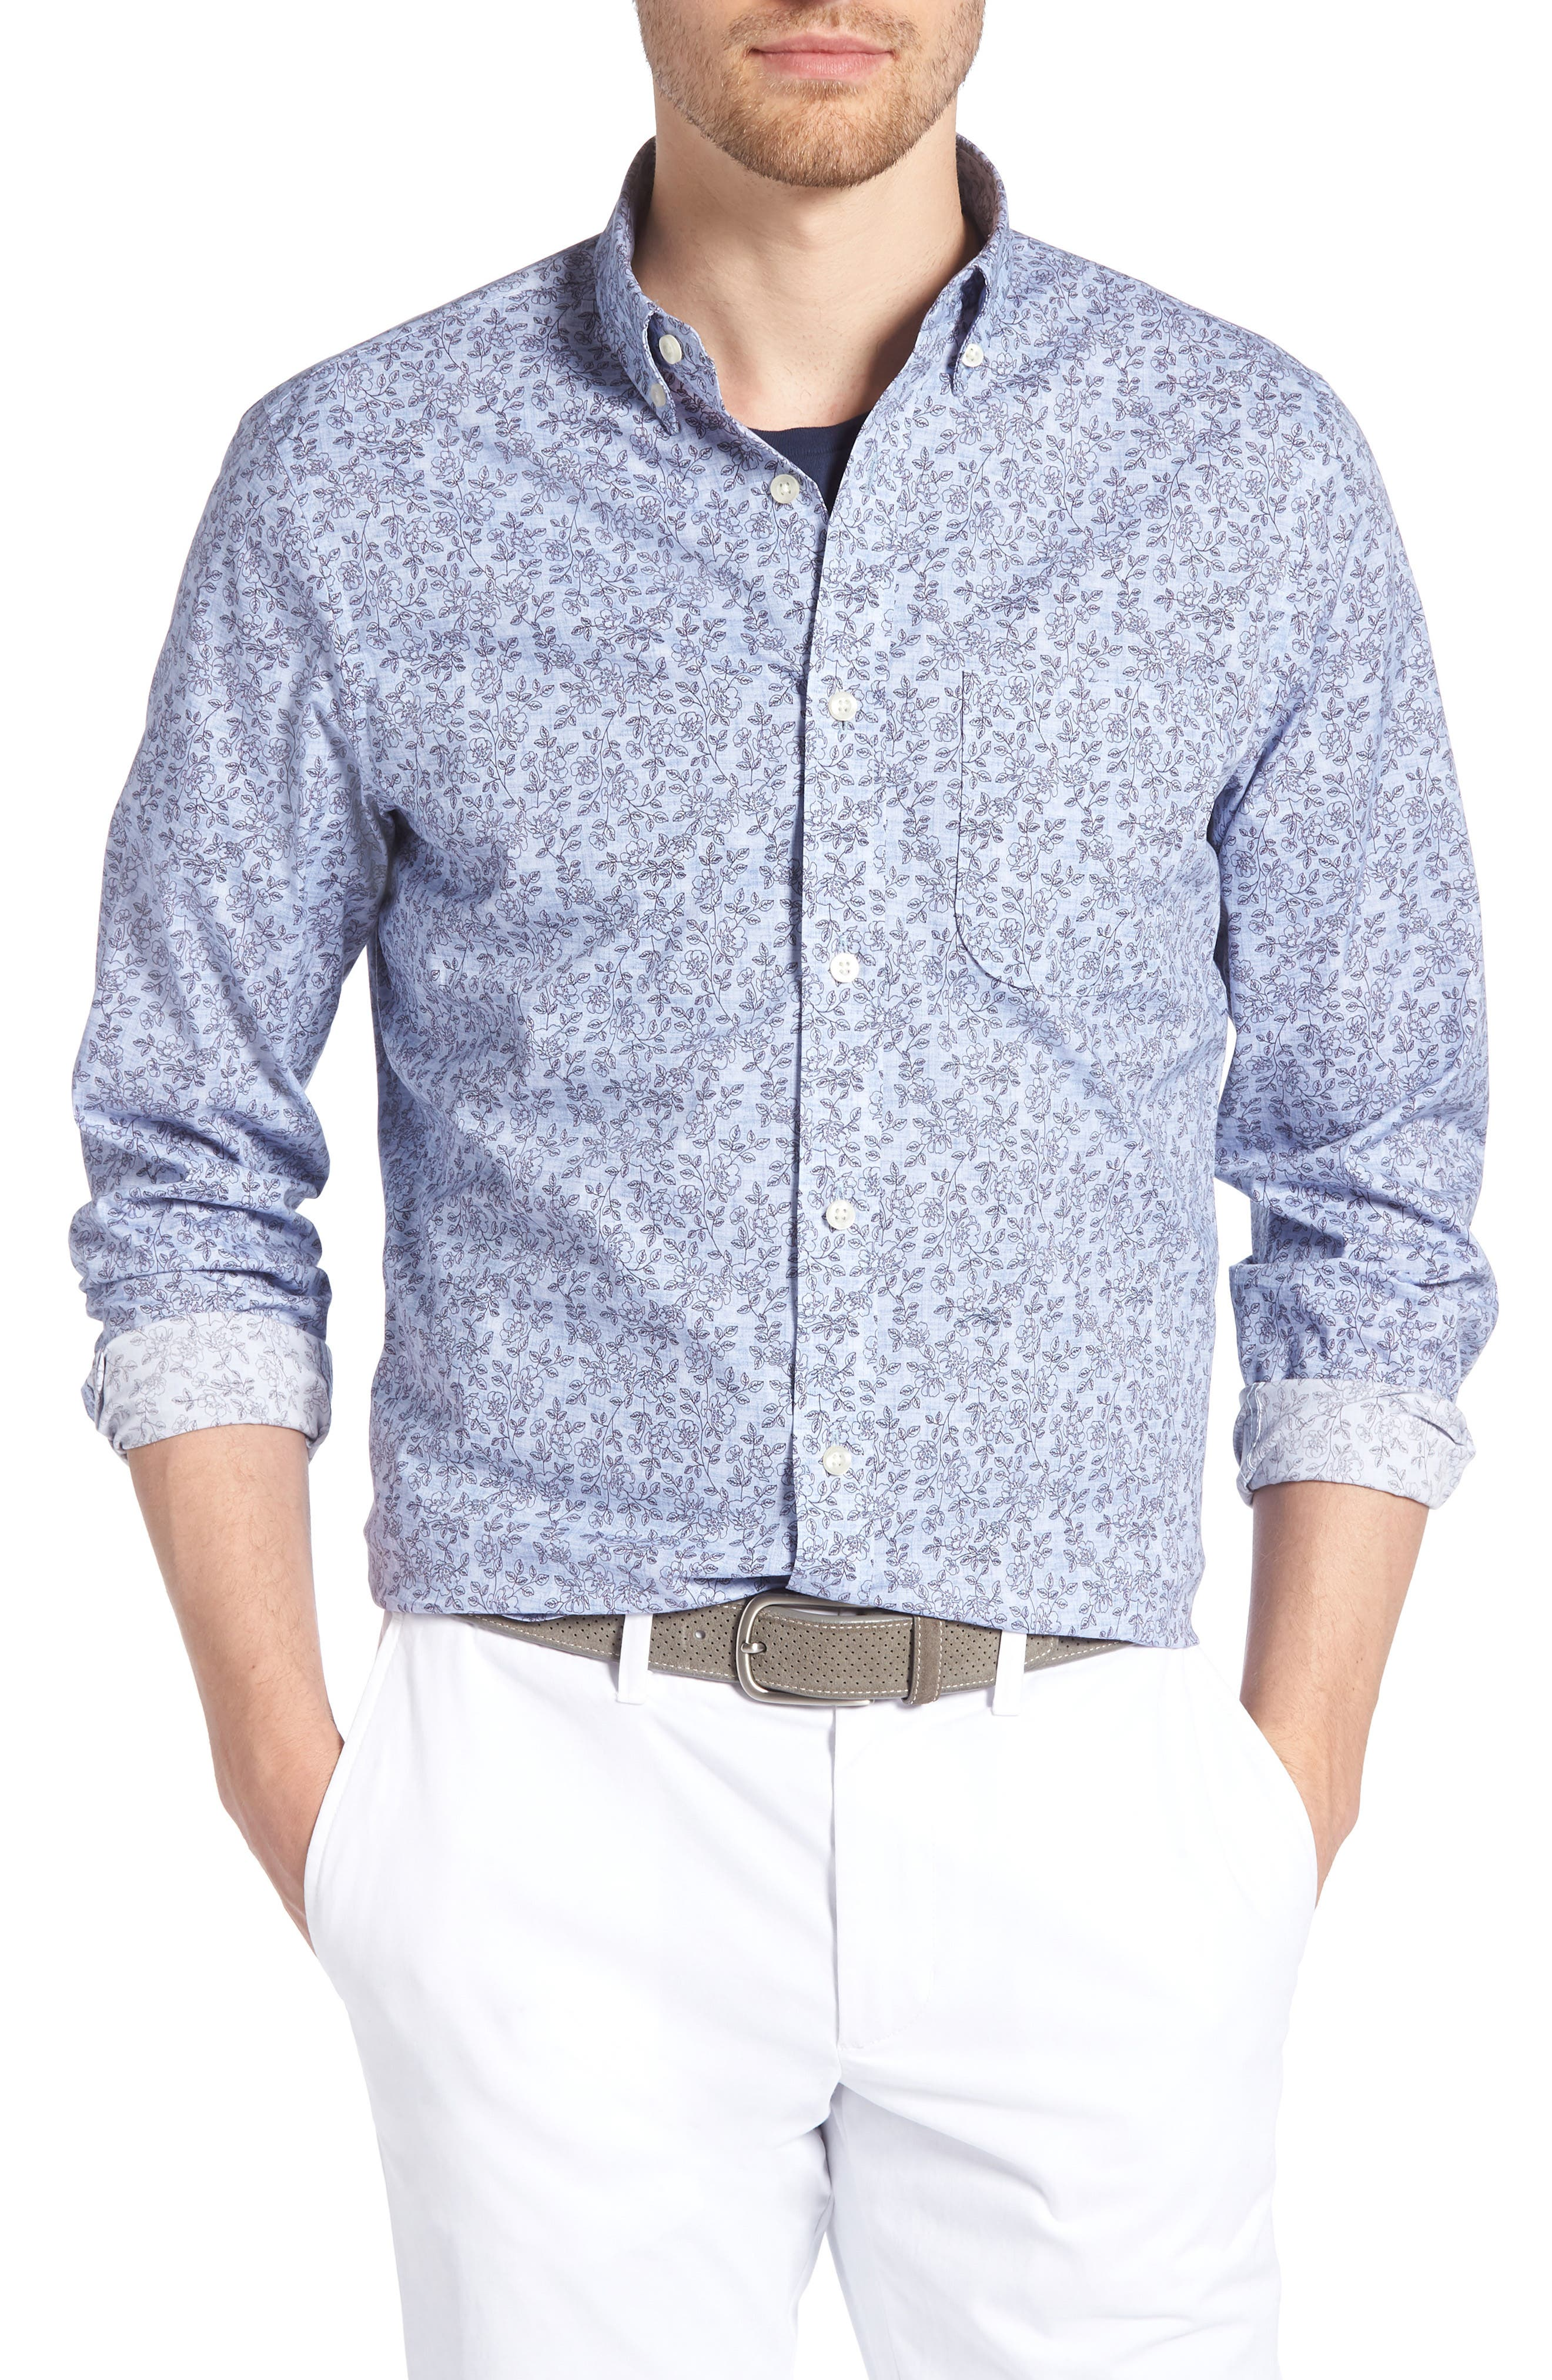 Trim Fit Chambray Floral Print Sport Shirt,                             Main thumbnail 1, color,                             Chambray Flower Print